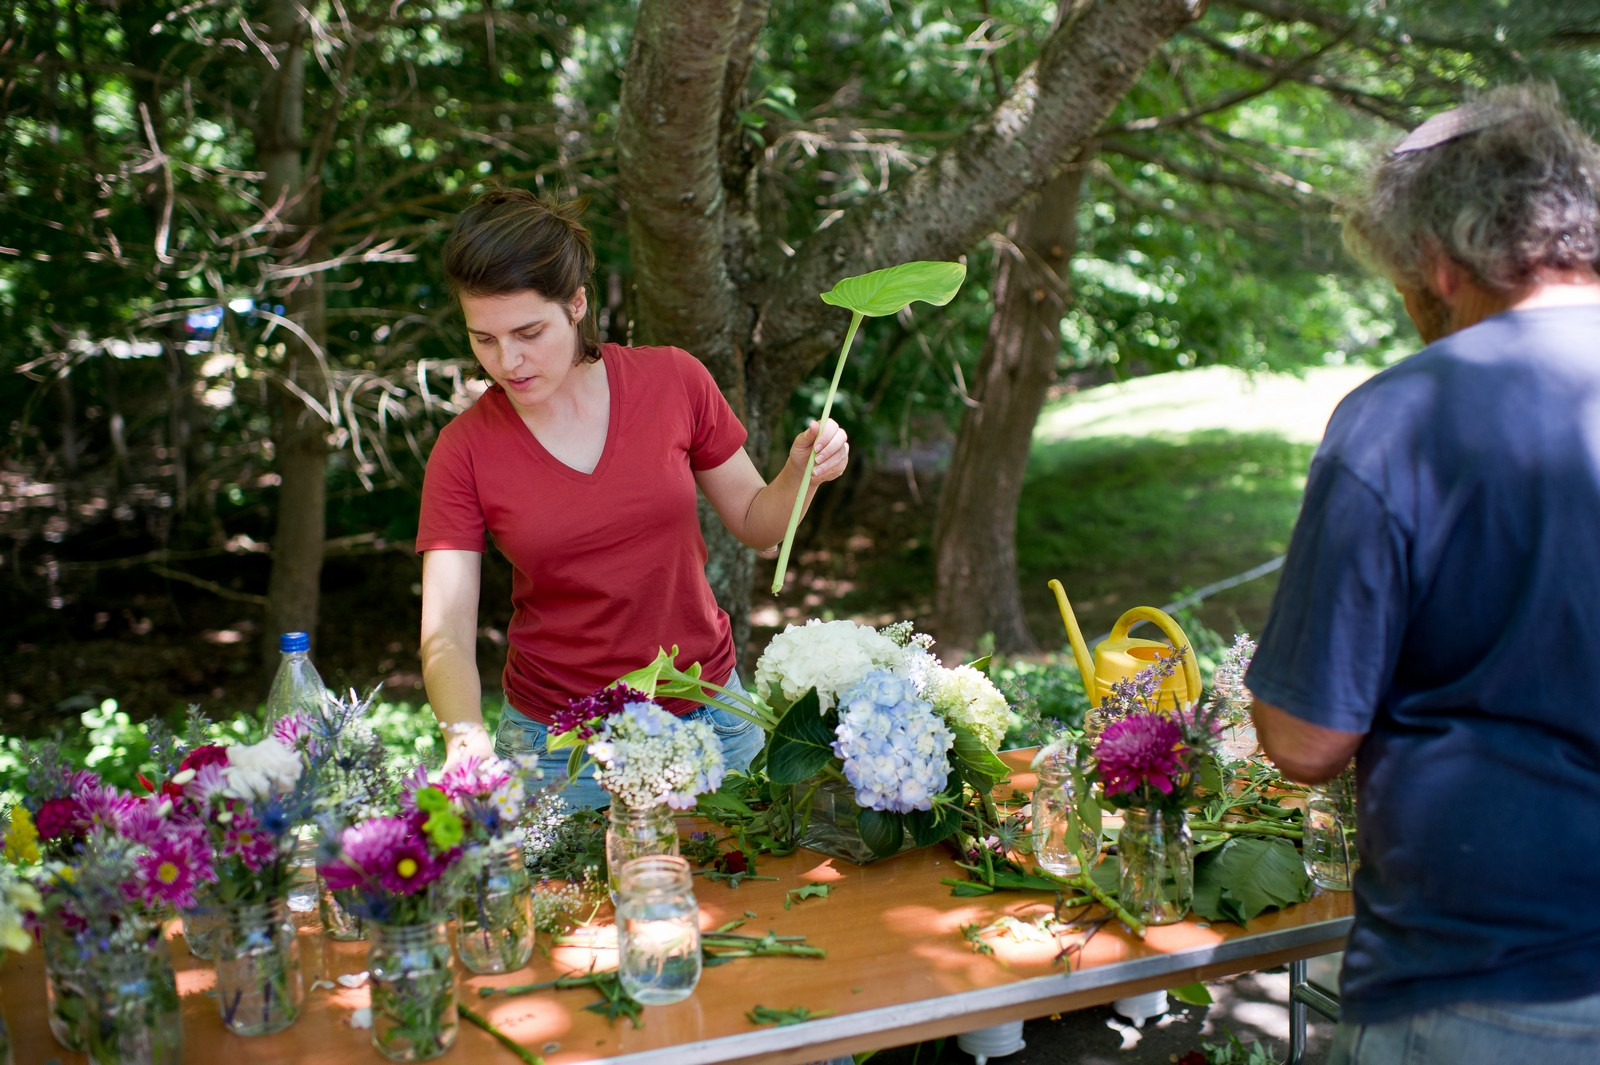 Ma'ayan and Mikey's Traditional Jewish Backyard Wedding in Fairfield, CT Photos by Chaim Schvarcz flowers prep family